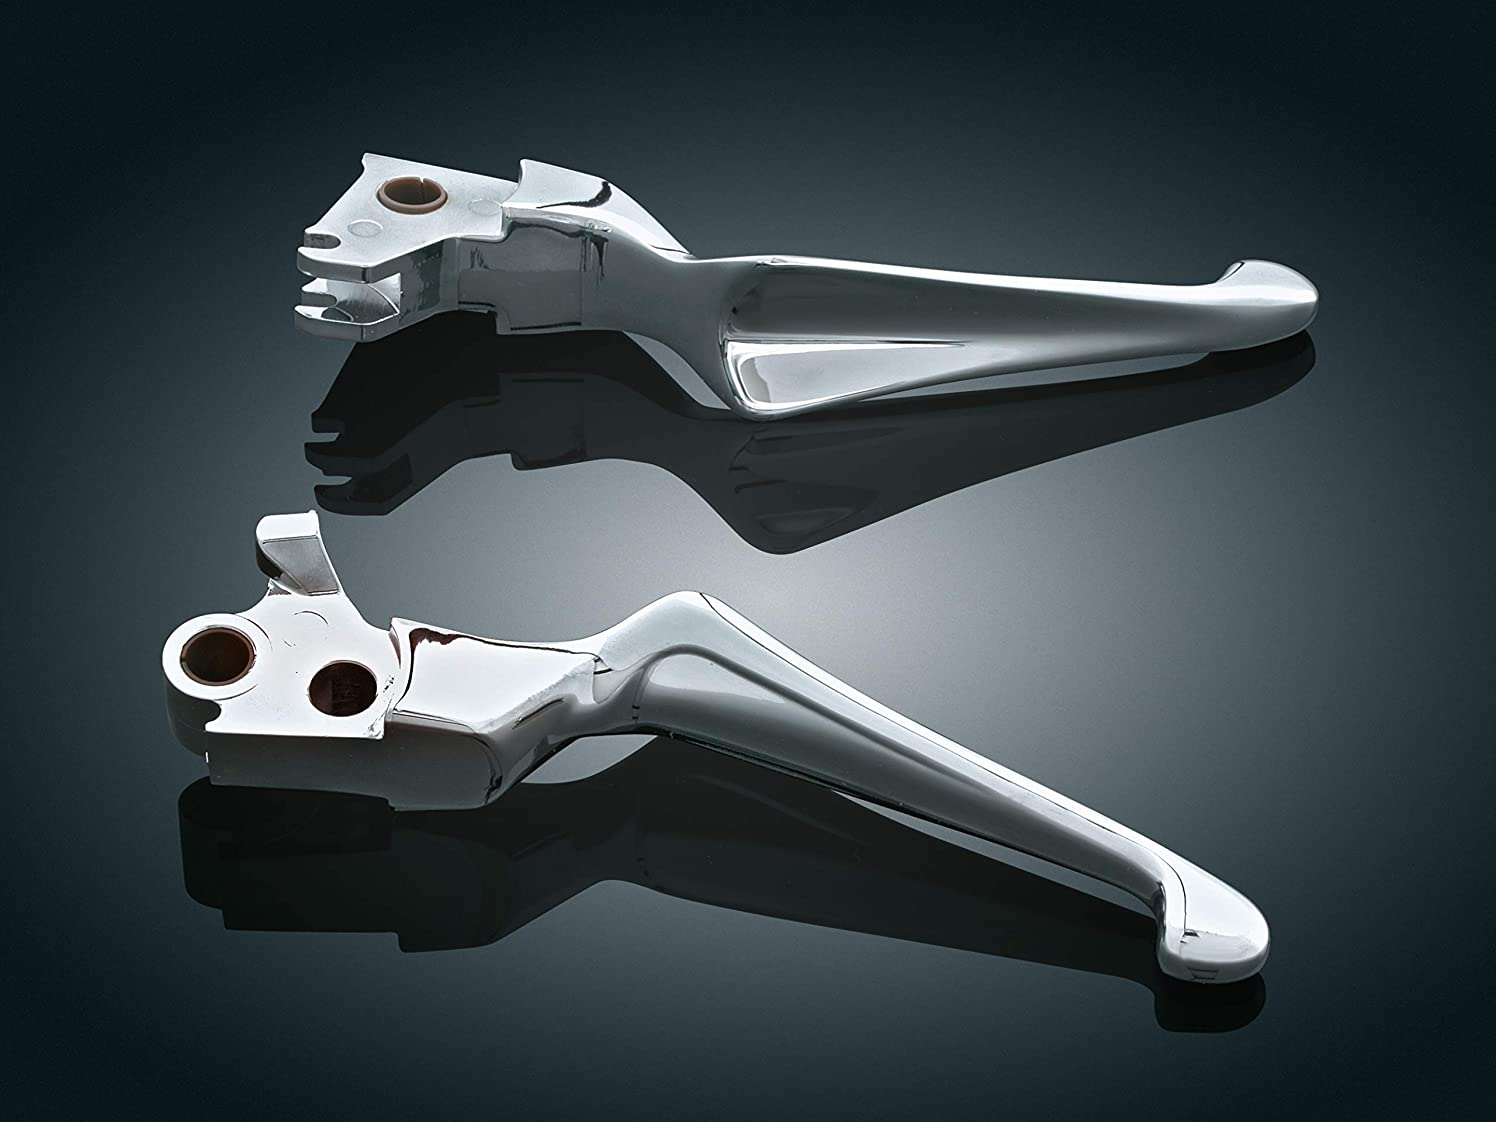 Kuryakyn 1036 Motorcycle Handlebar Accessory: Boss Blades Clutch and Brake Trigger Levers for 1999-2006 Harley-Davidson Motorcycles with Hydraulic Clutch, Chrome, 1 Pair